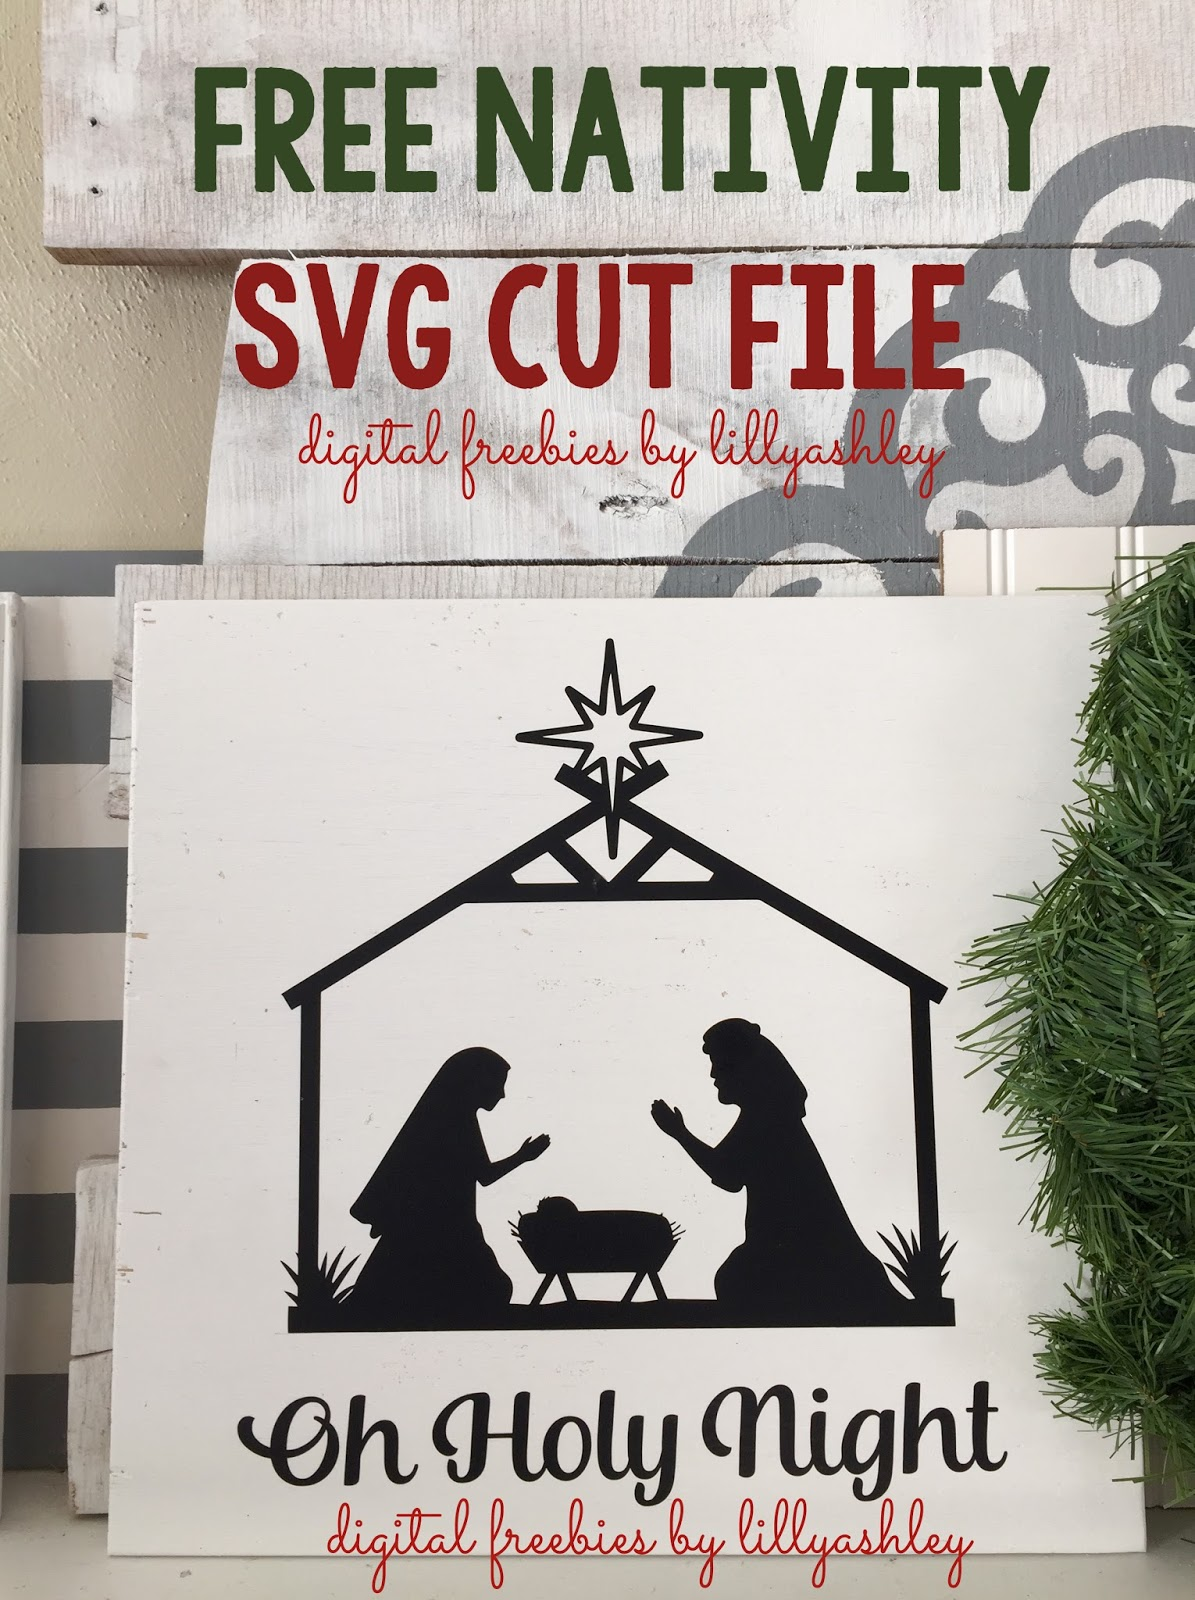 Make It Create Free Cut Files And Printables Free Nativity Svg Cut File